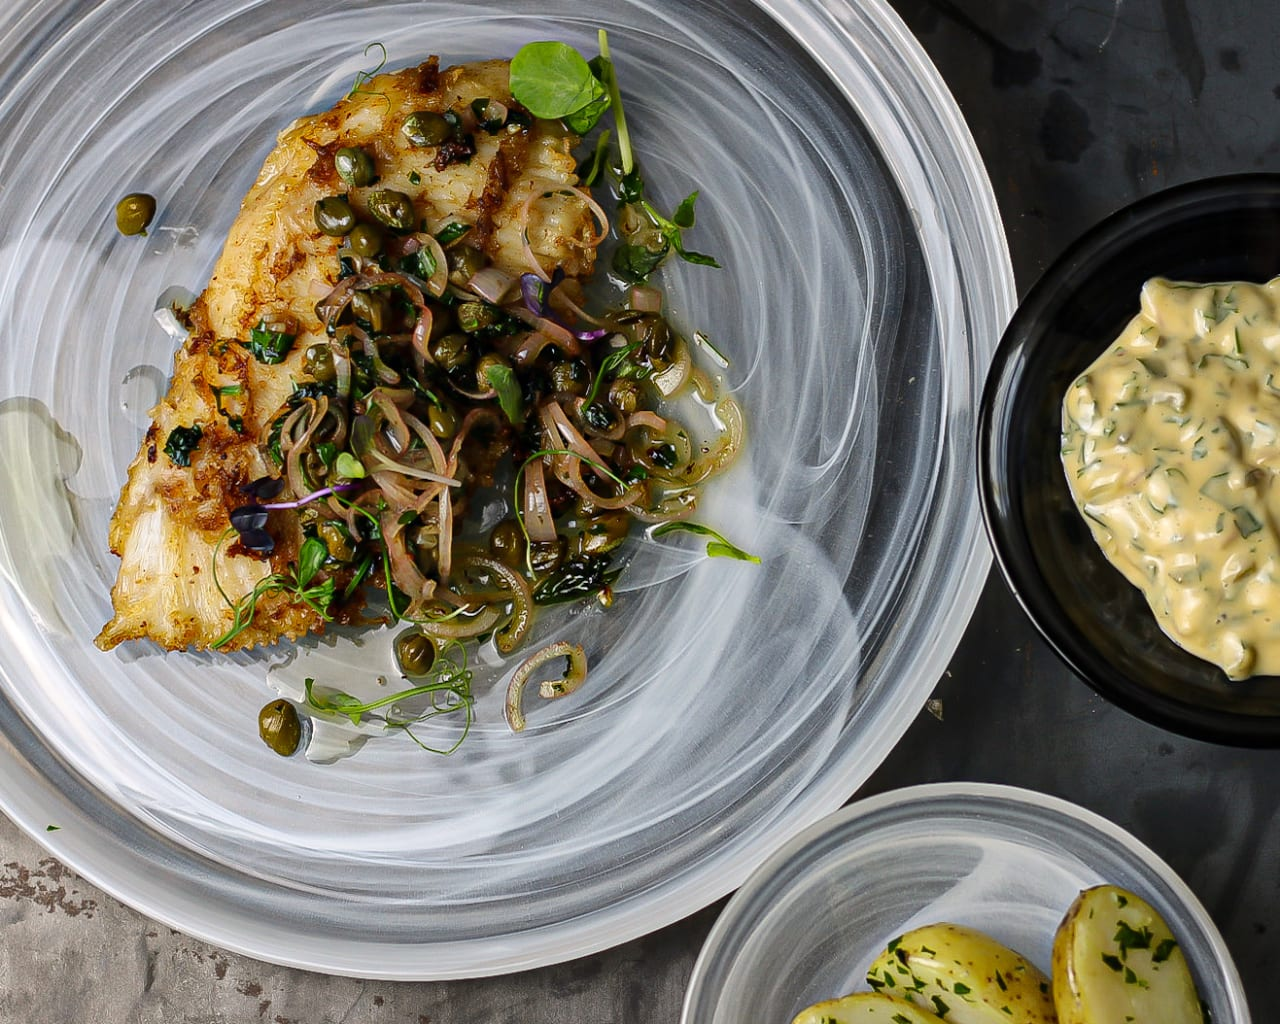 Ray Wing with Nut Brown Butter